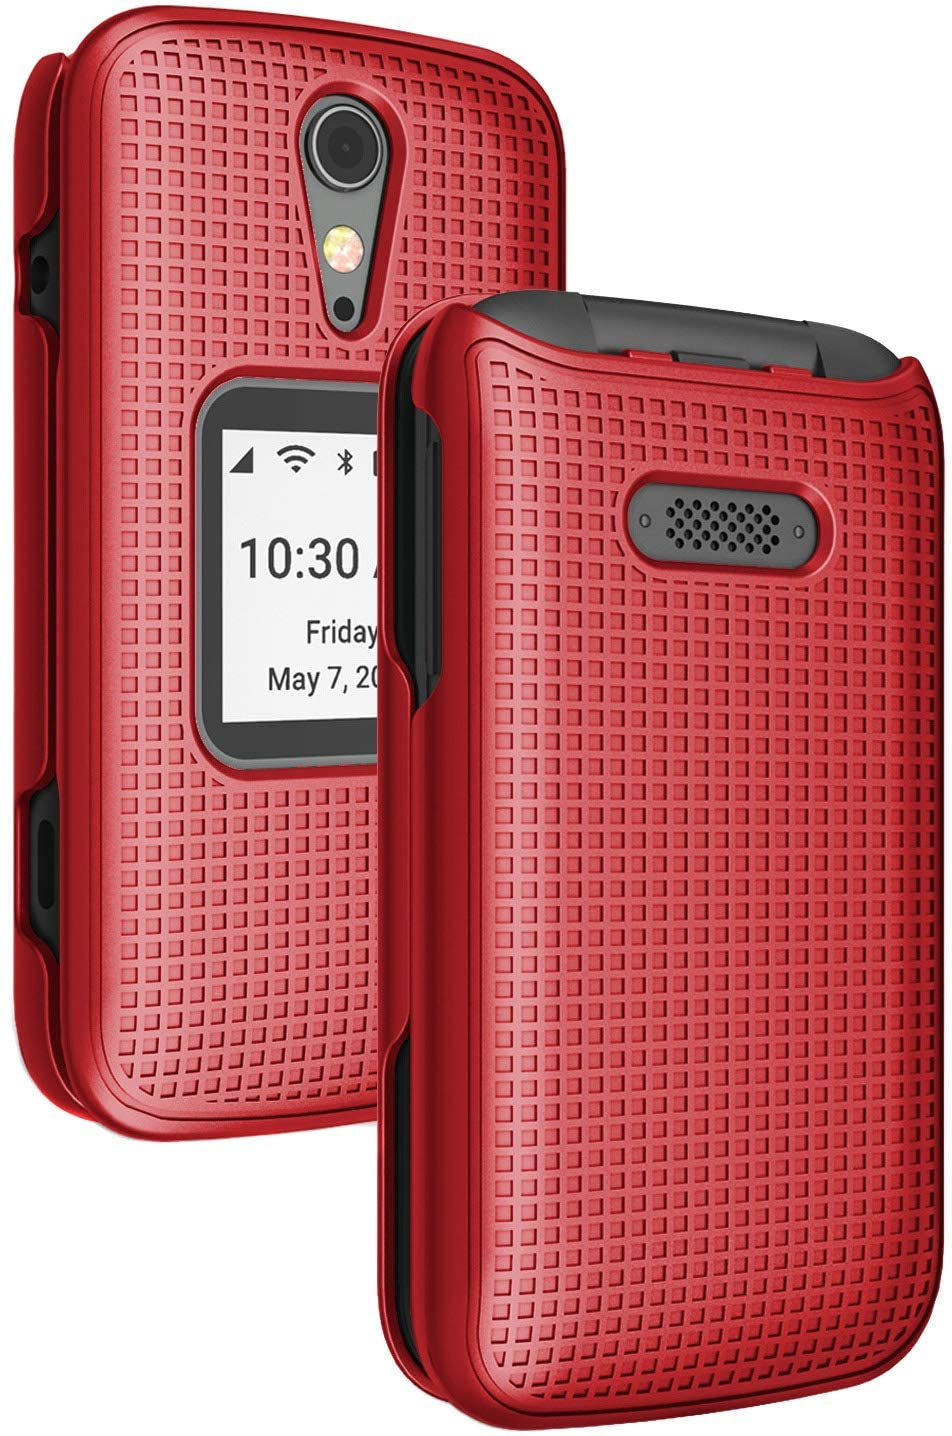 Case for Jitterbug Flip2, Nakedcellphone [Red] Protective Snap-On Hard Shell Cover [Grid Texture] for Jitterbug Flip 2 Phone (aka Lively Flip) (4053SJ7)